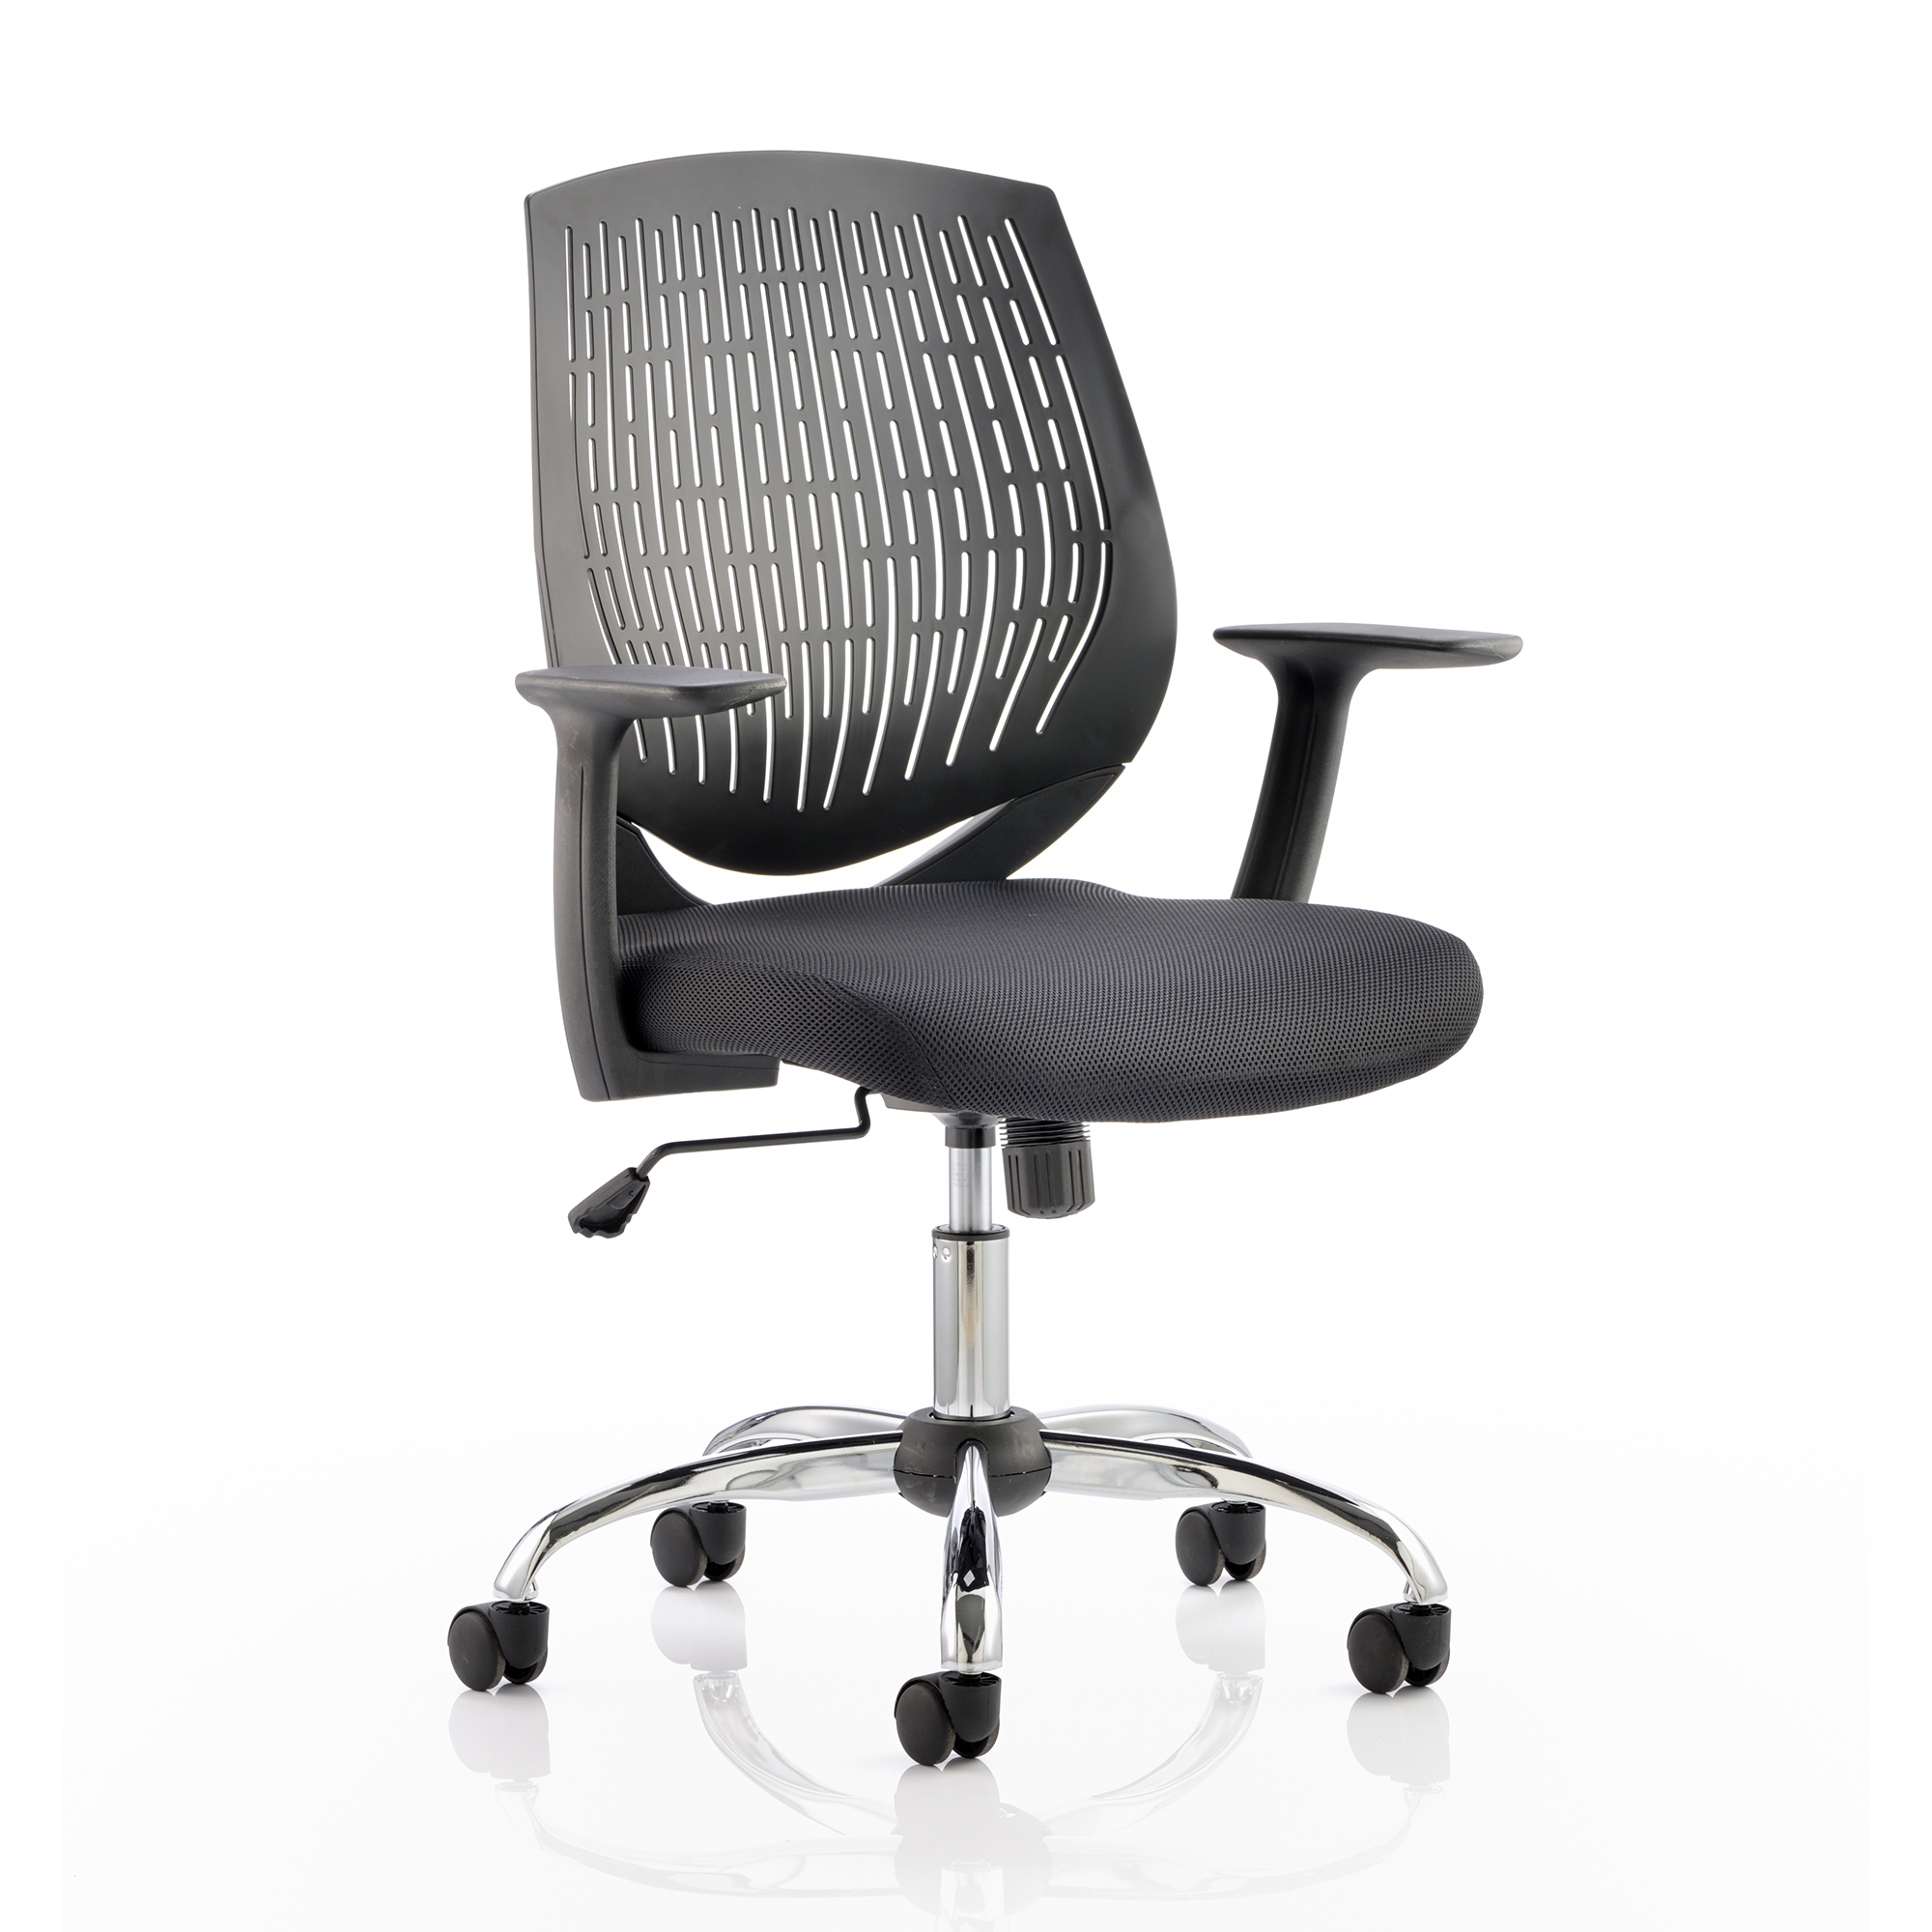 Guest seating 5 Star Office Dura Task Operator Chair With Arms Black Ref OP000014